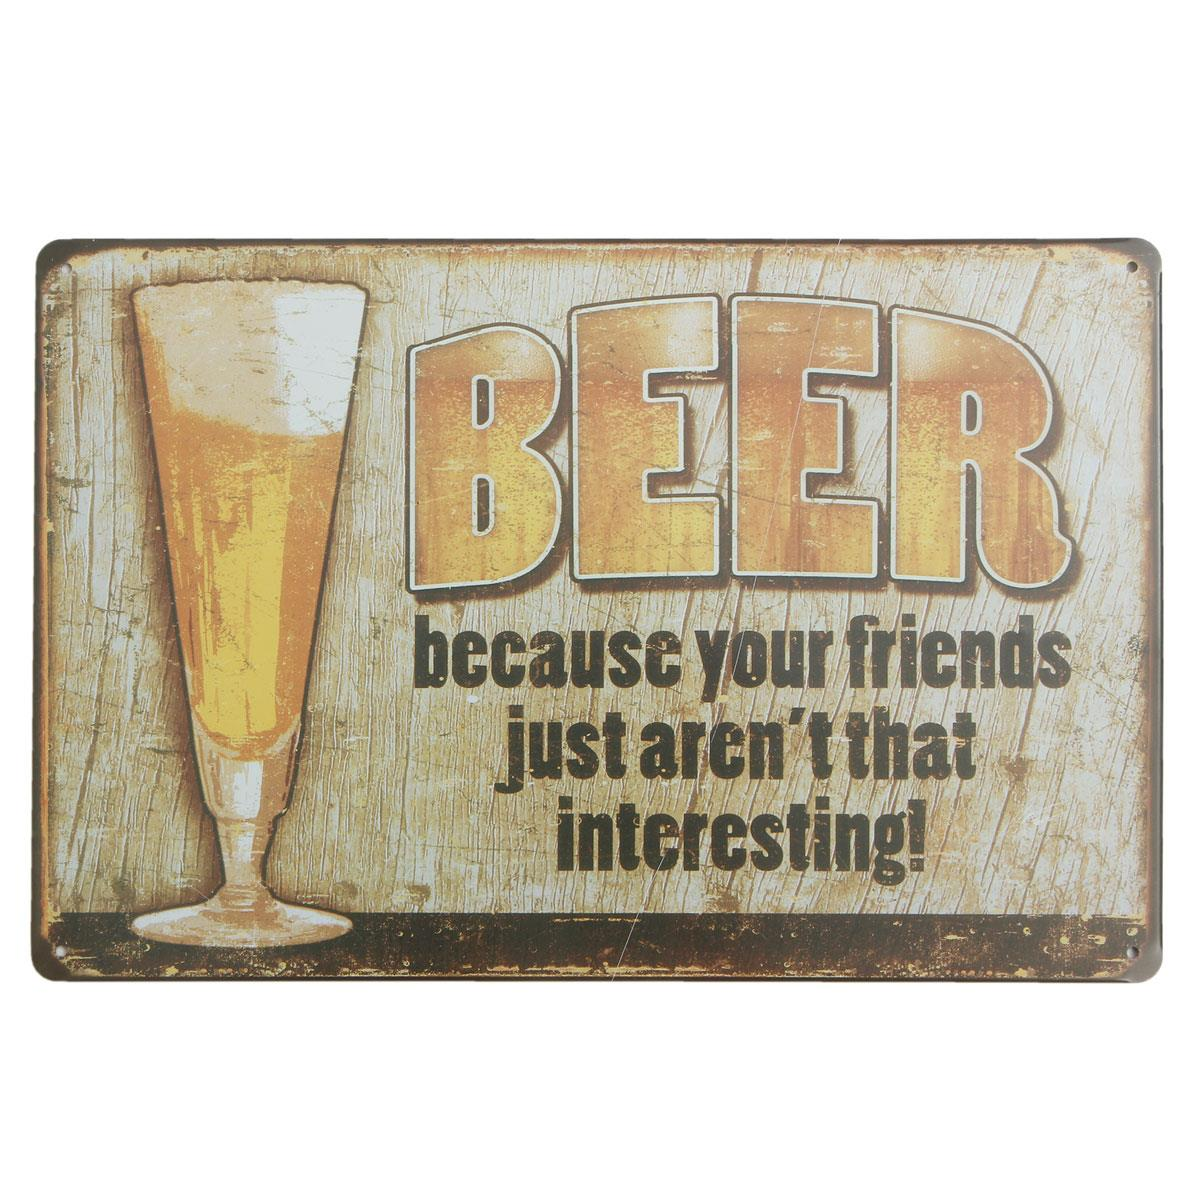 New Arrival BEER BECAUSE Vintage Metal Tin Sign Bar Pub Home Wall Decor Retro Metal Art Poster Decoration 30*20*0.2CM